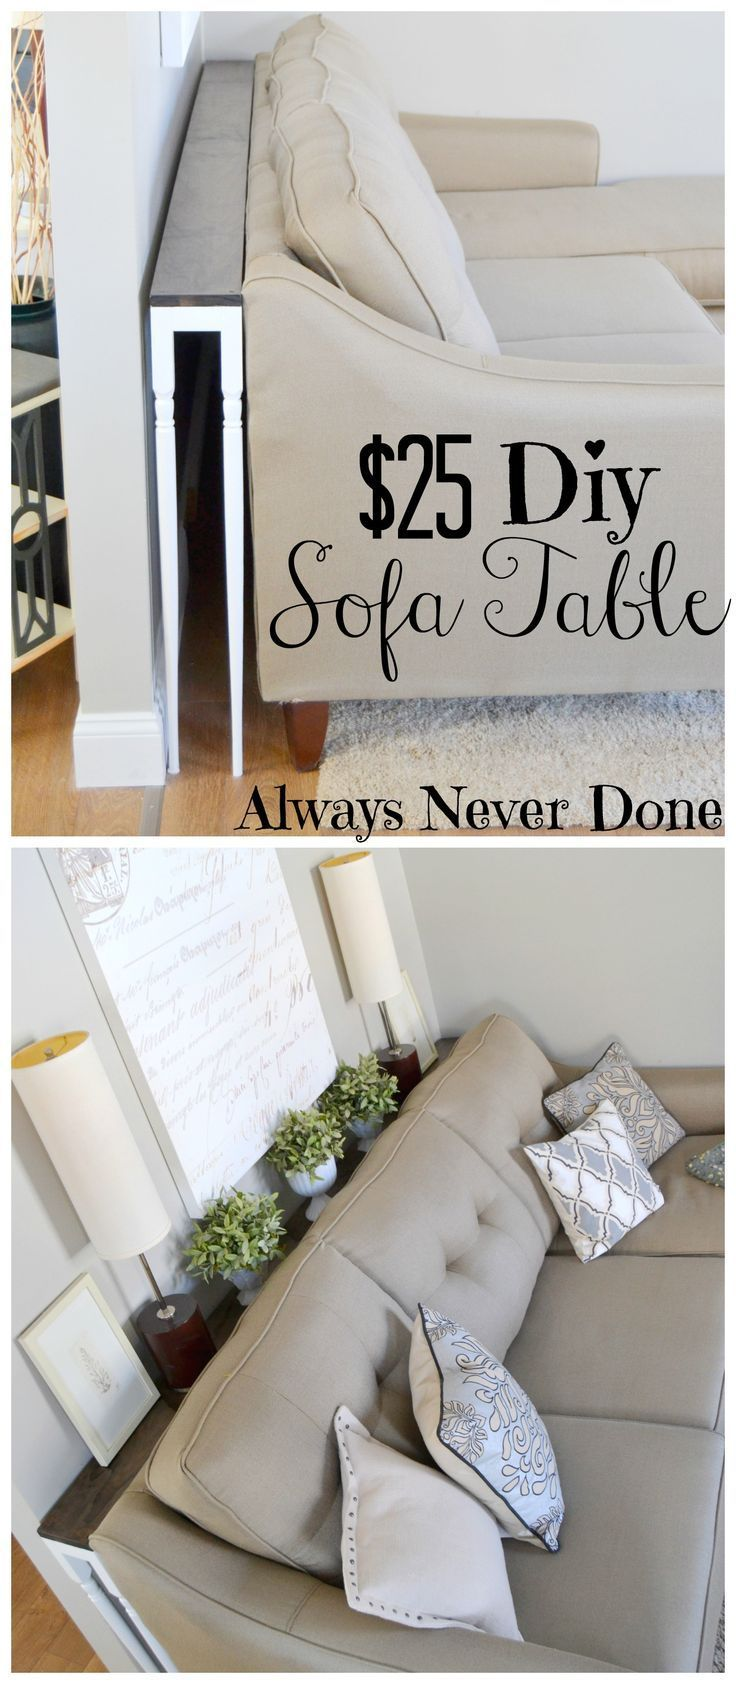 Wonderful DIY Sofa Table For $25 Using Stair Rails As Legs. Makes It Easy To Access